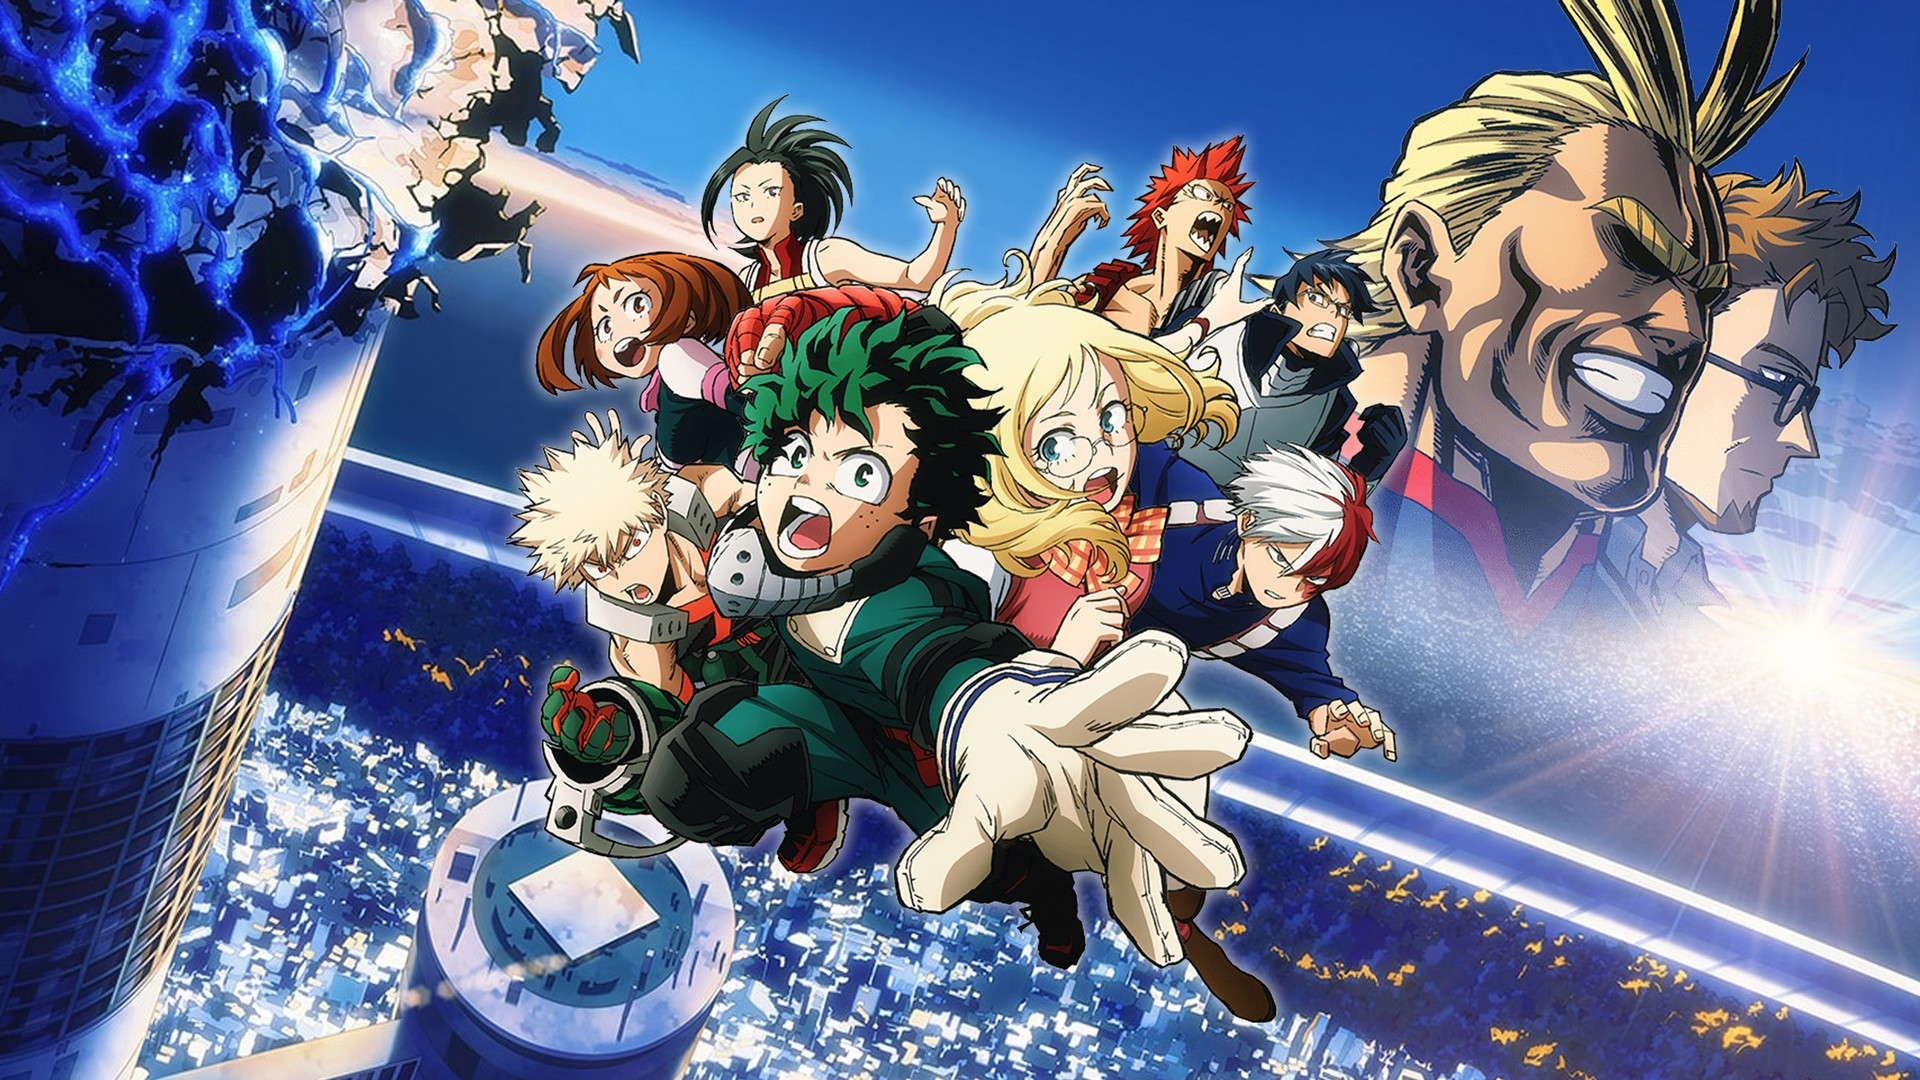 No thanks / not interested. My Hero Academia Desktop Backgrounds | 2021 Live Wallpaper HD